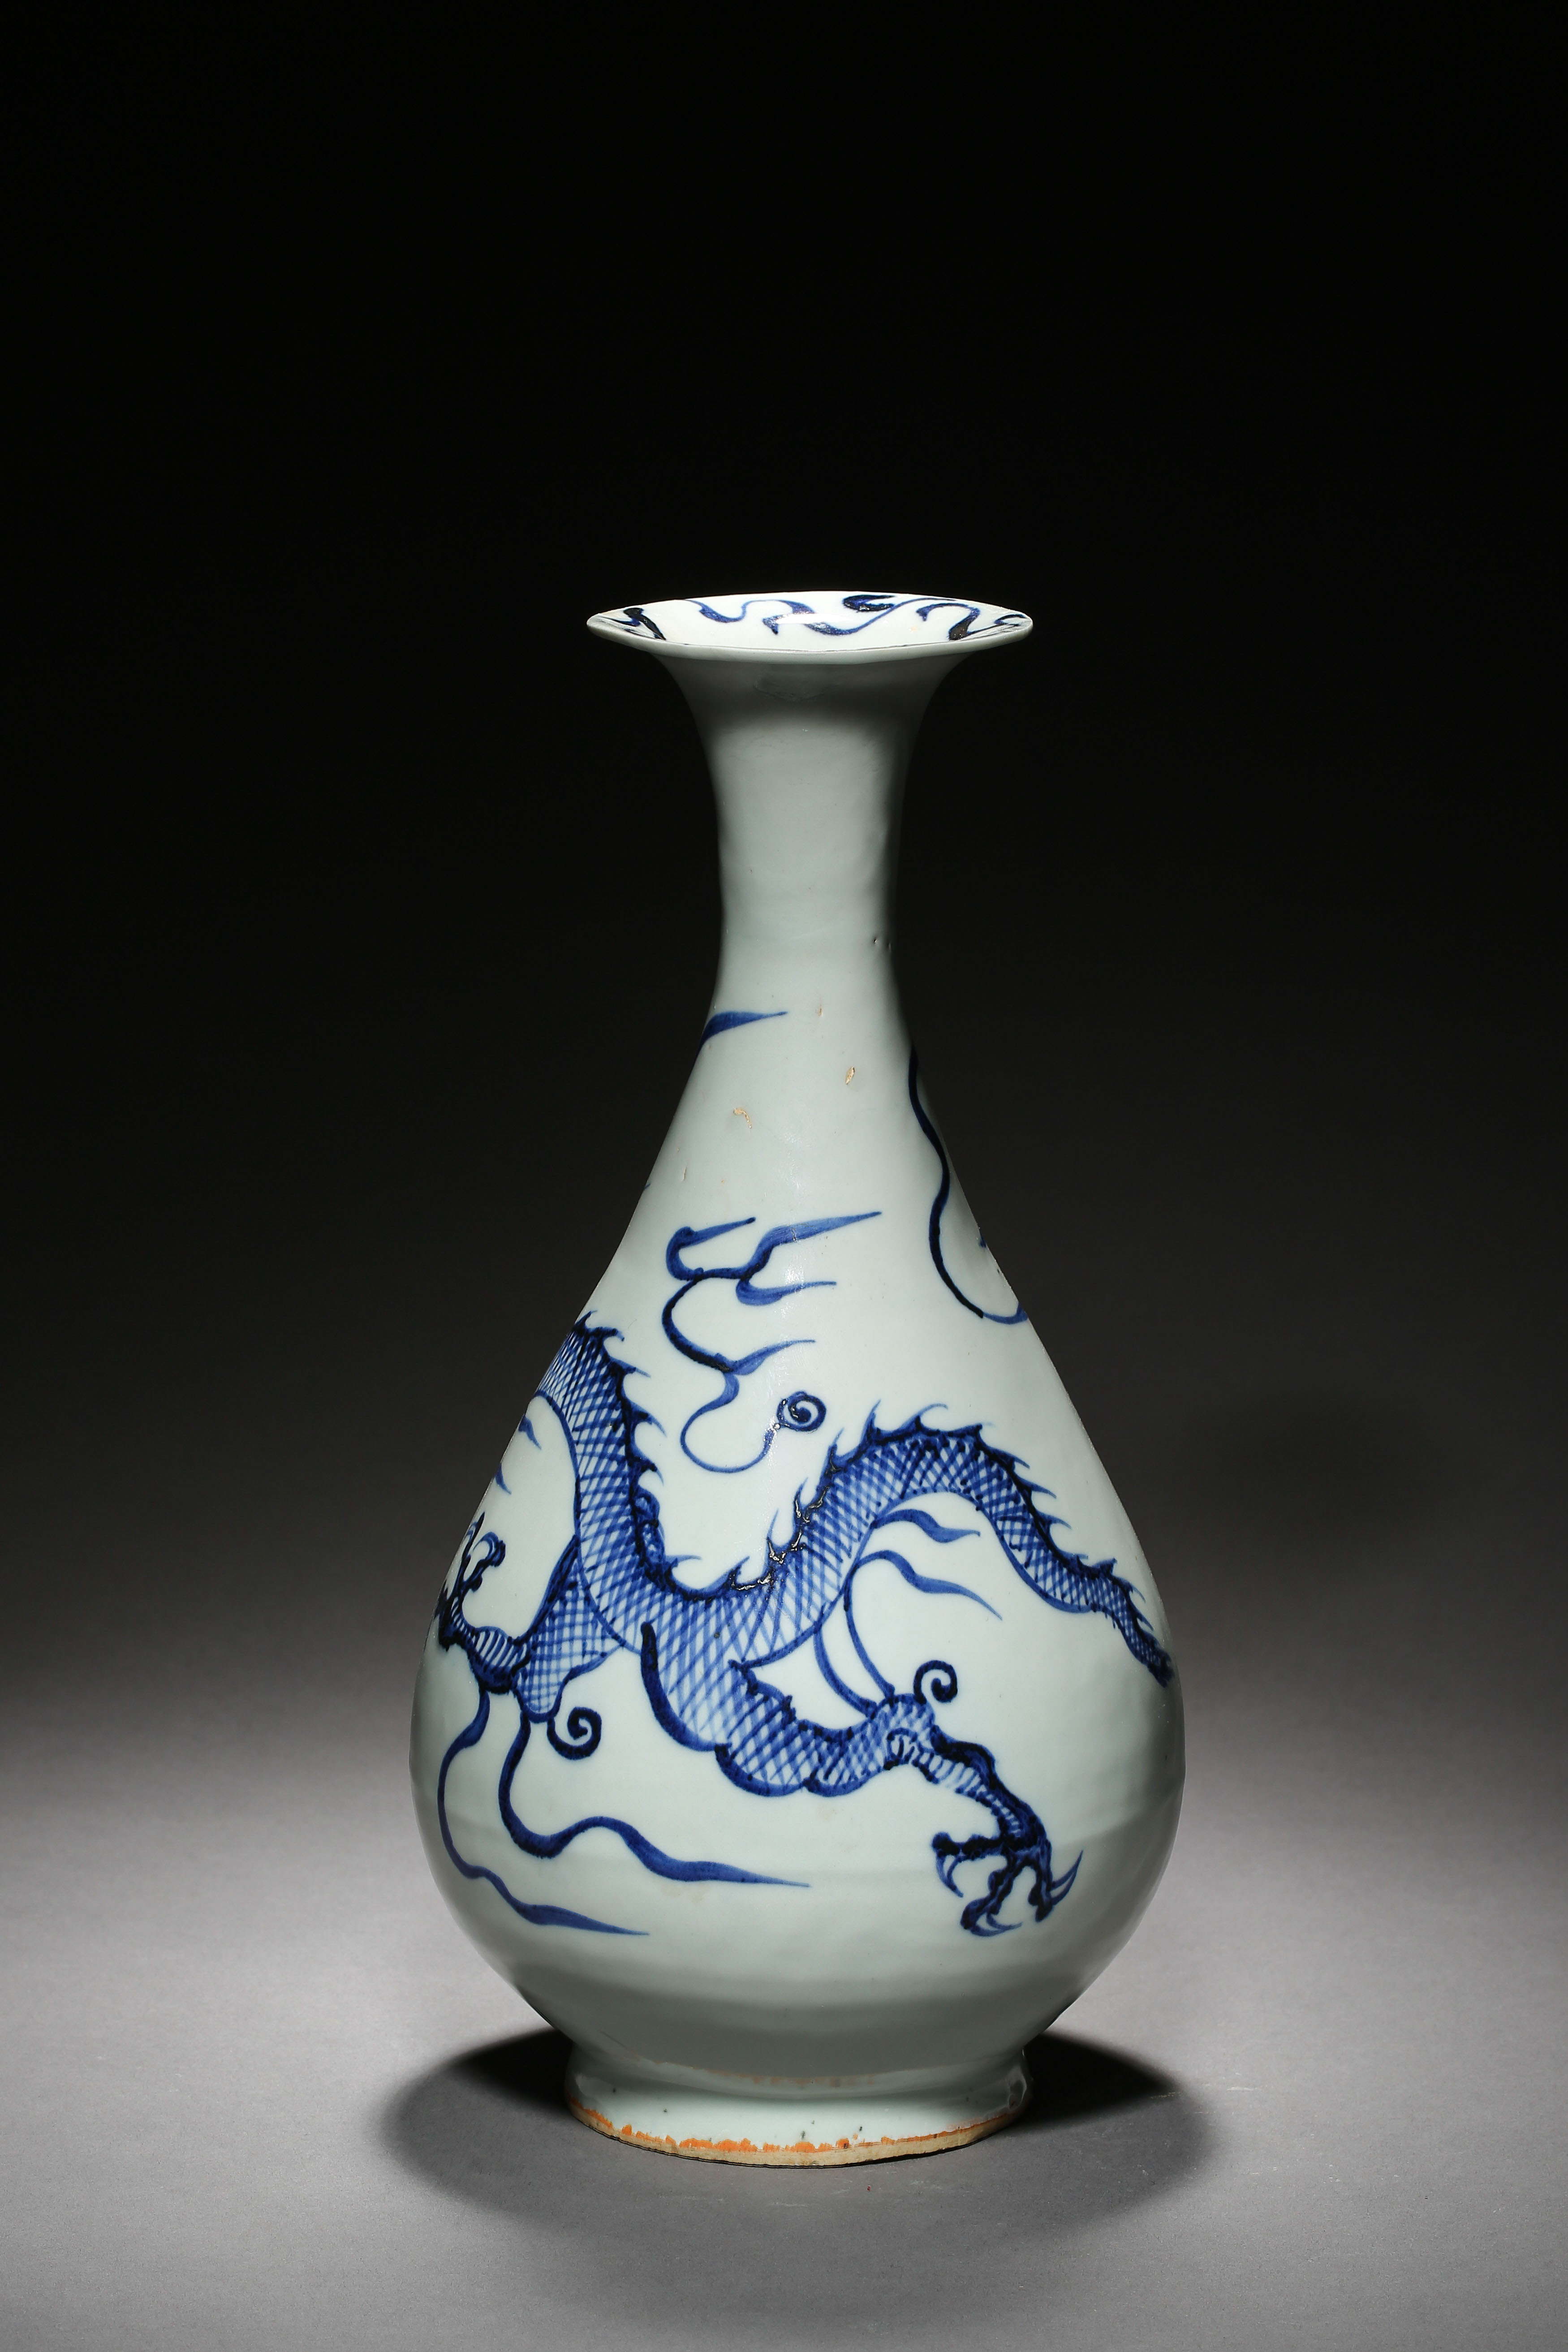 BLUE AND WHITE DRAGON PATTERN VASE, YUAN DYNASTY, CHINA - Image 3 of 8